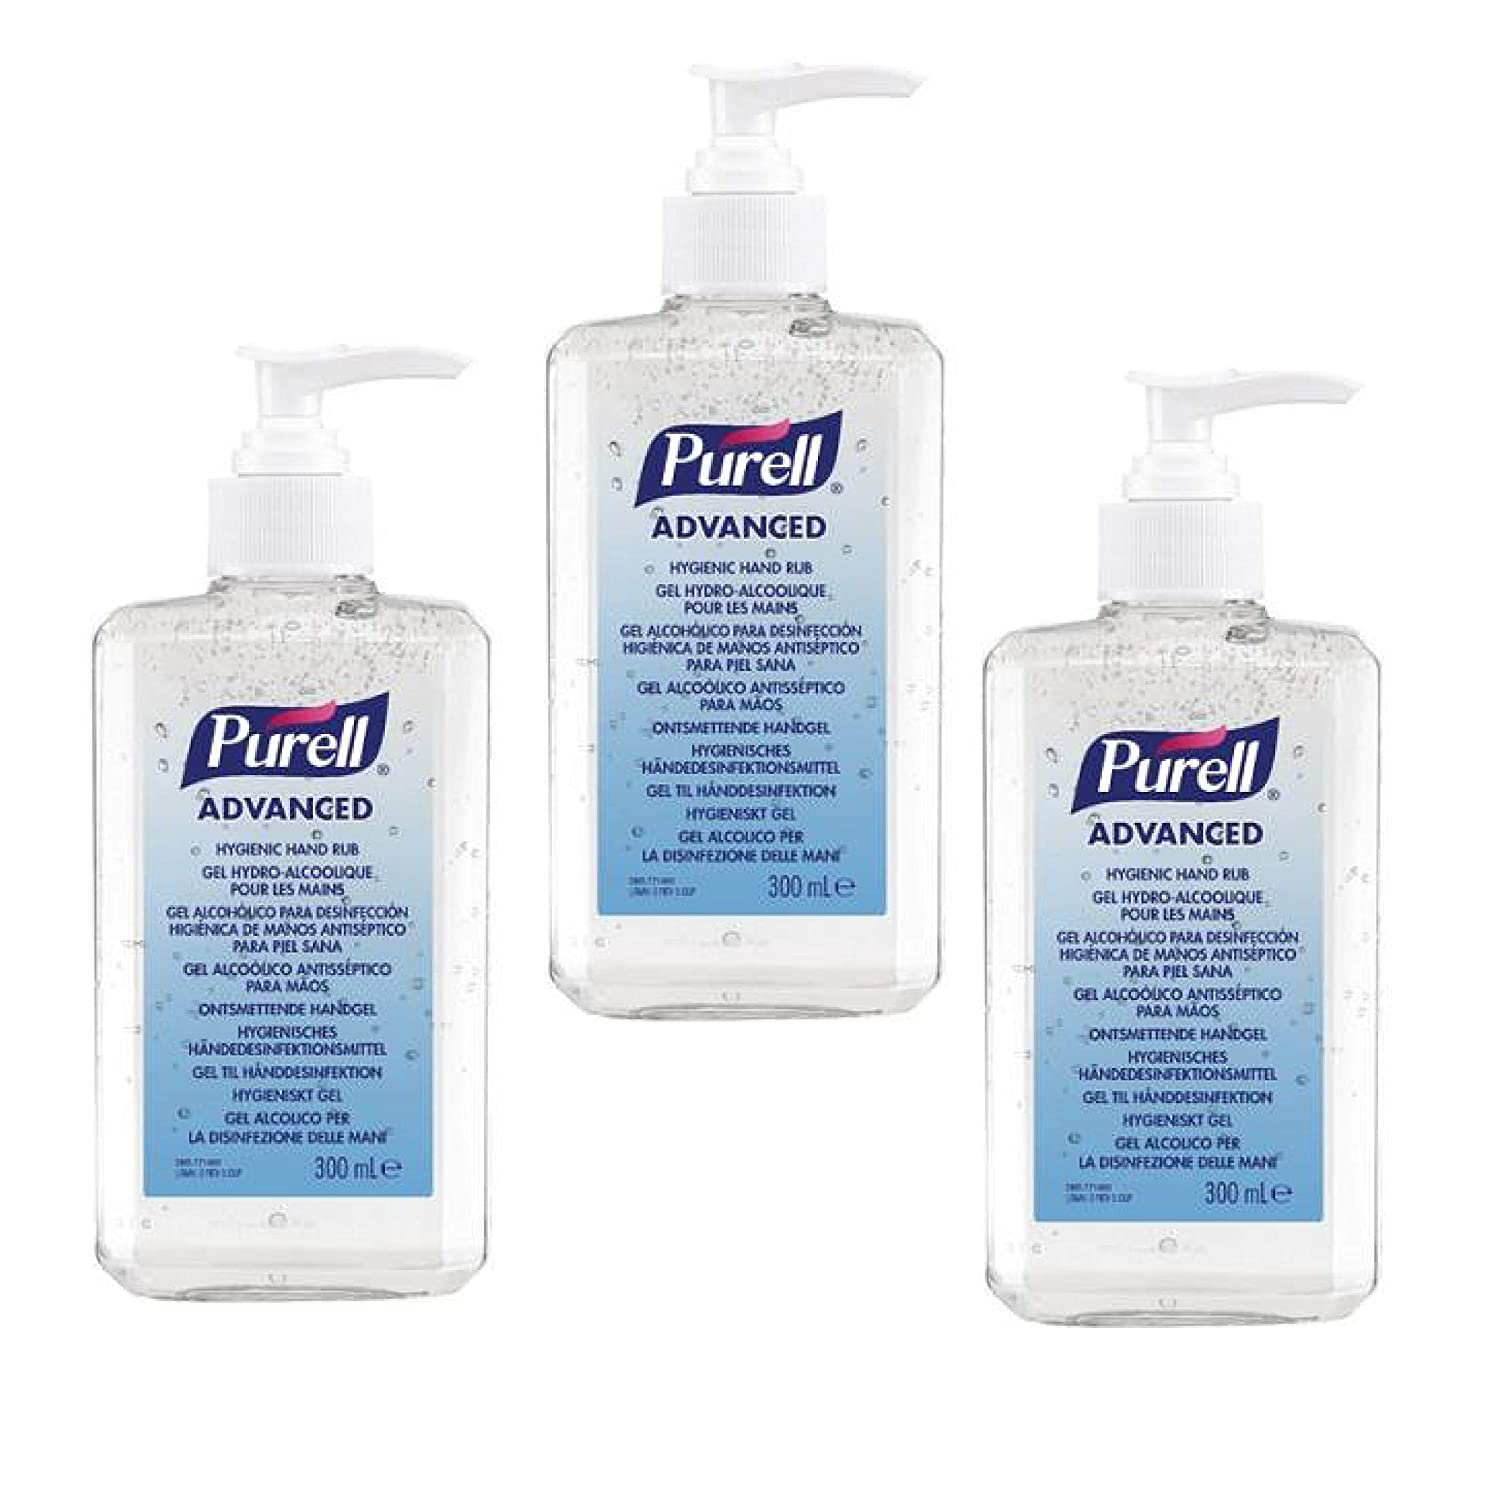 Purell Advanced Hand Sanitizer Gel 300ml Pack Of 3 Amazon Co Uk